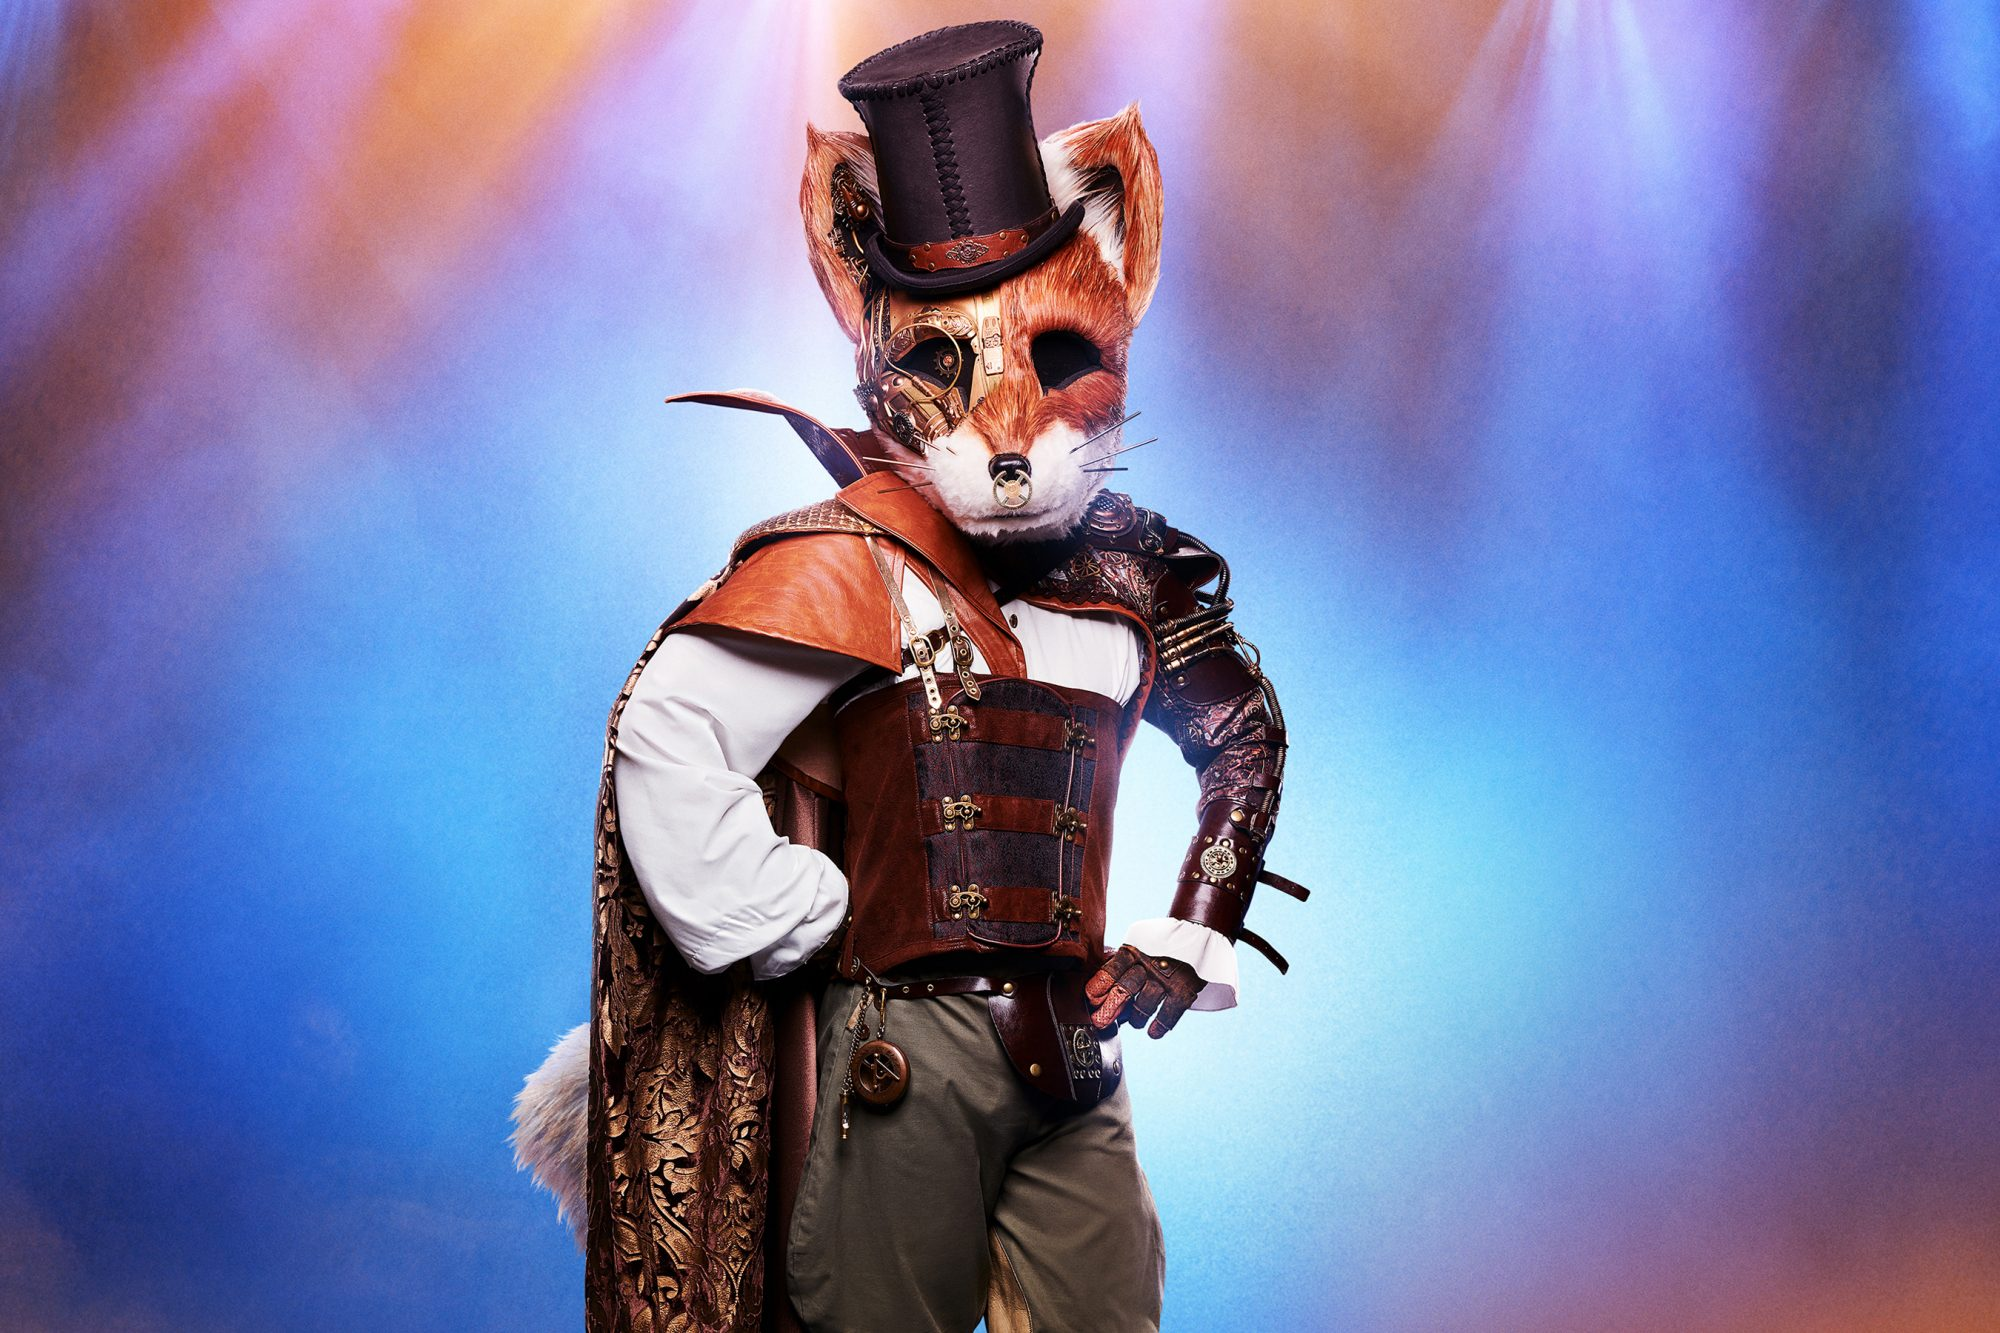 THE MASKED SINGER: The Fox.